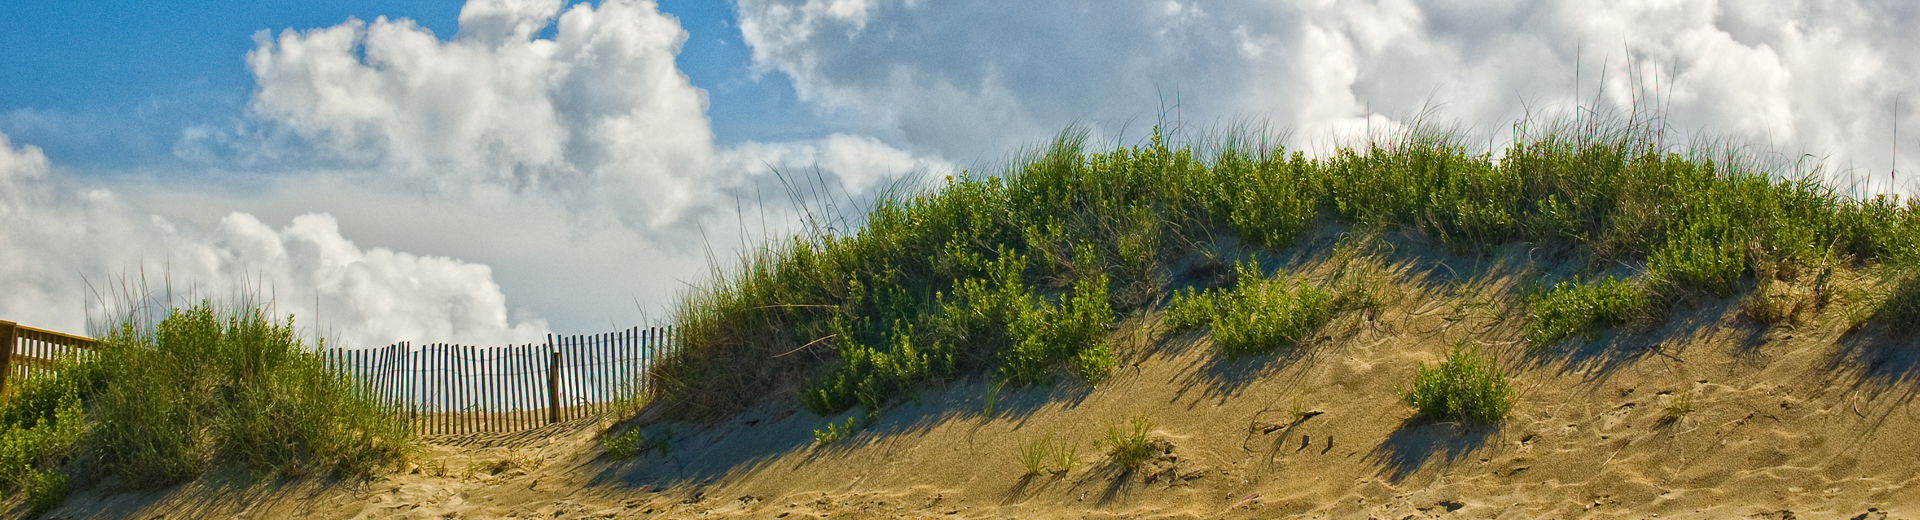 dunes in corolla beach